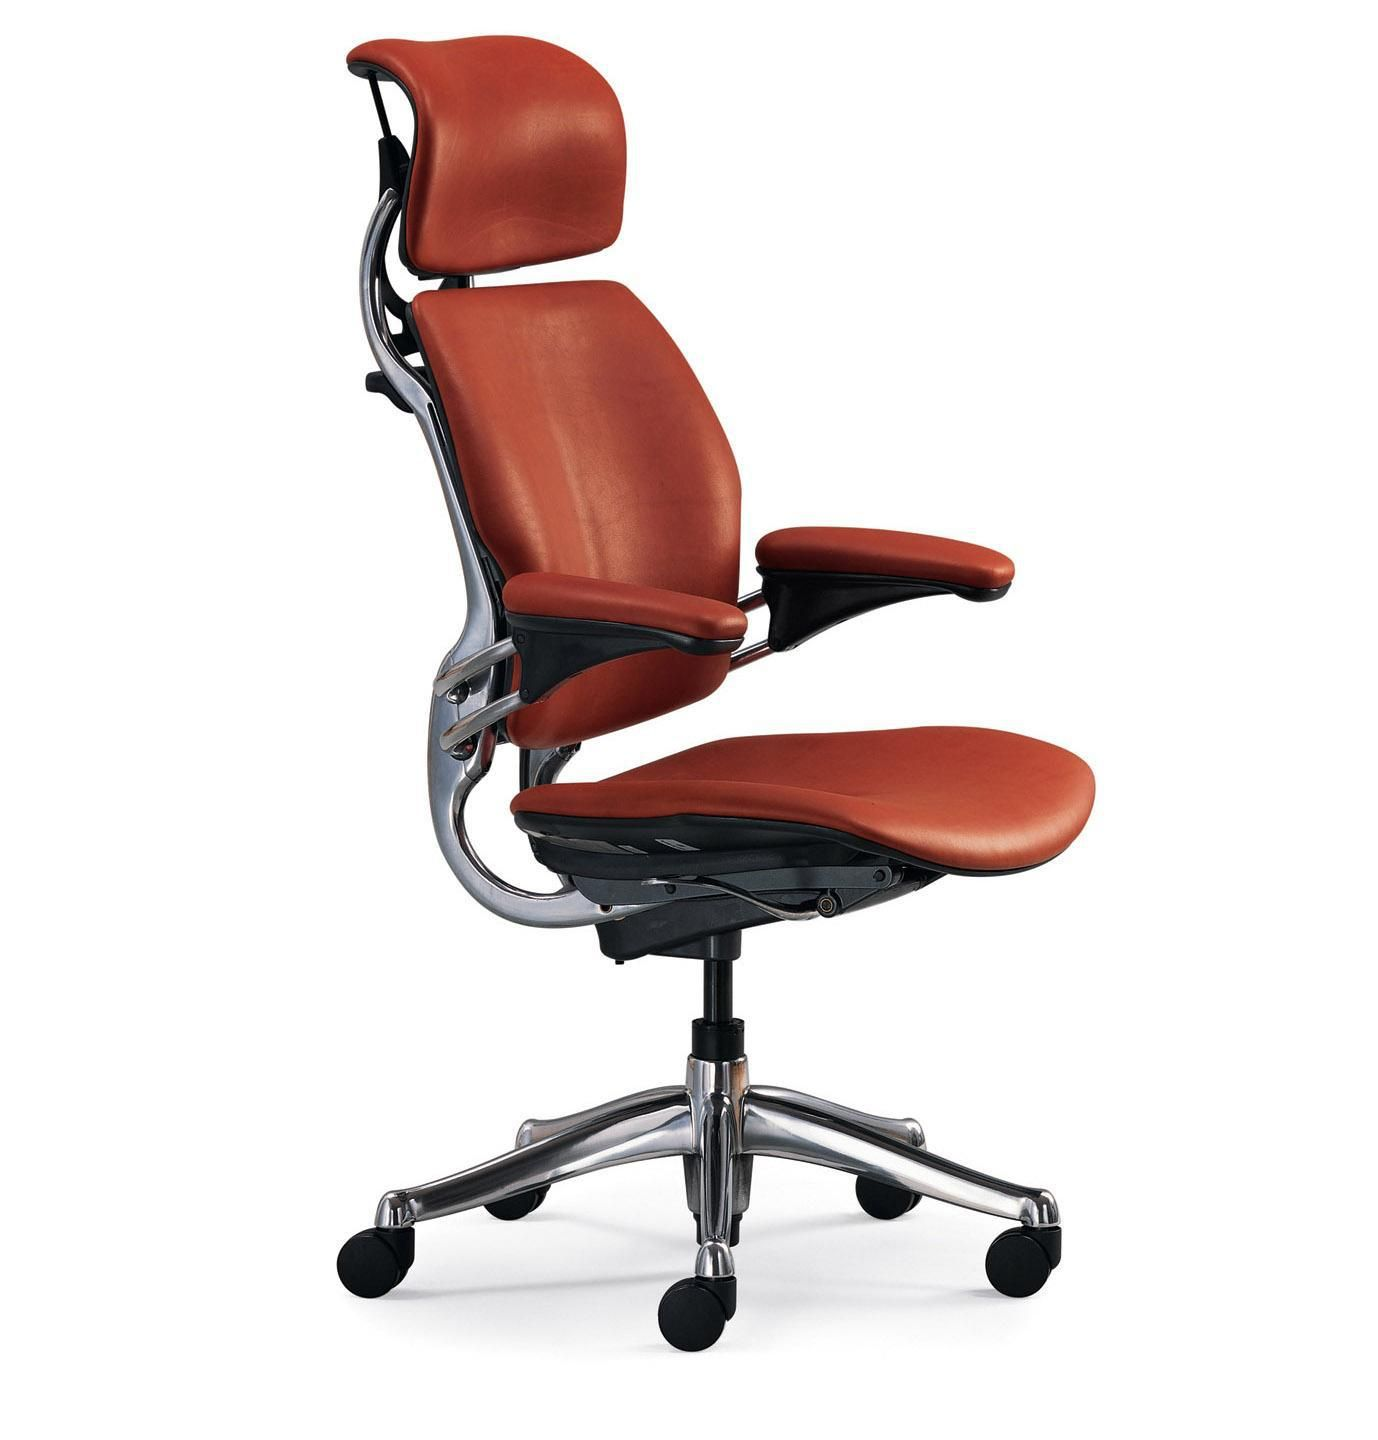 of is leading ergonomic manufacturer chair the tools products office humanscale